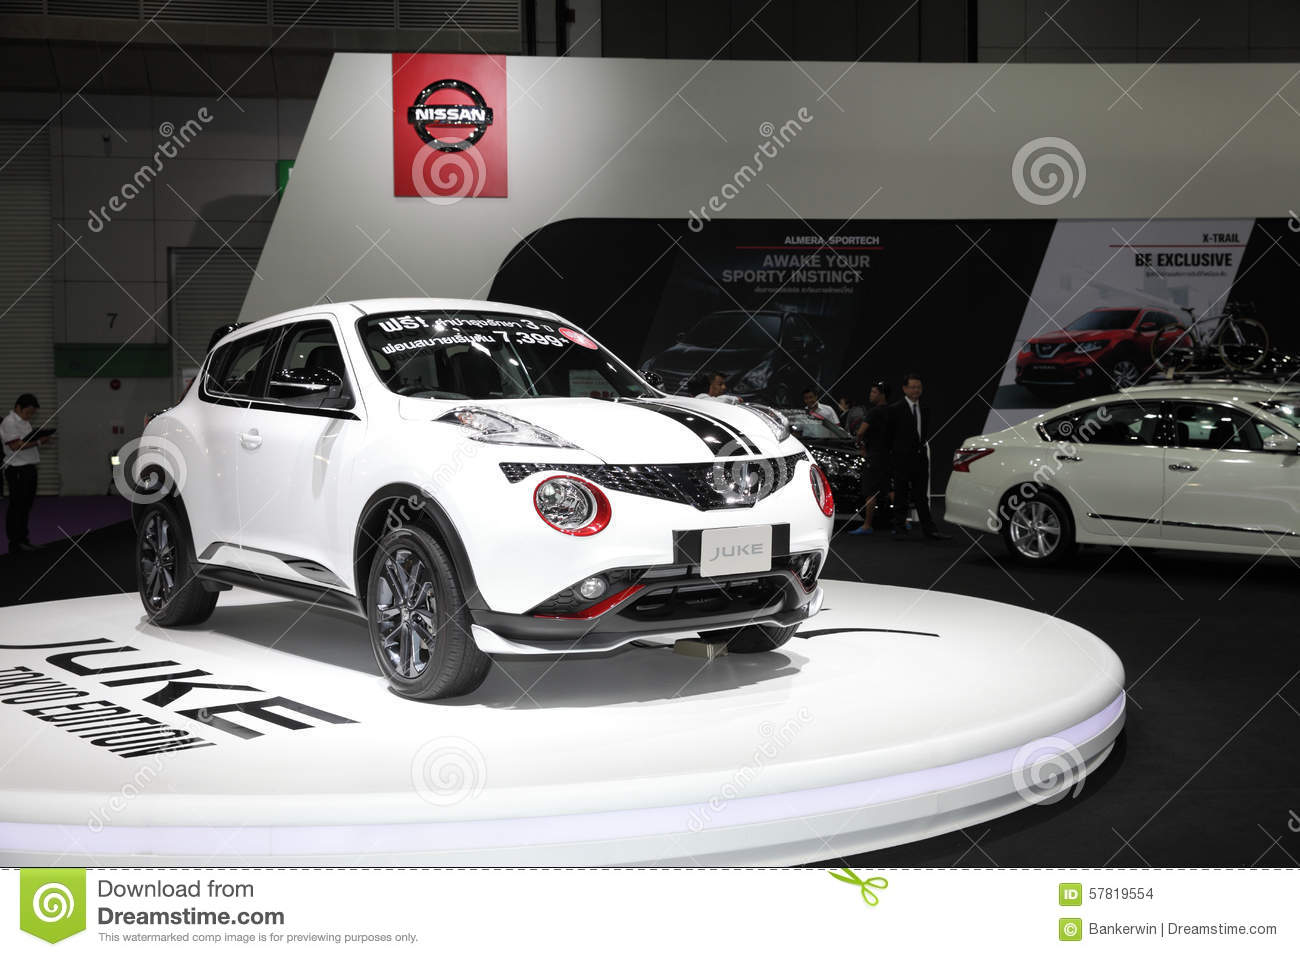 BANGKOK August Nissan Juke Tokyo Edition Car On Display At - Car show displays for sale